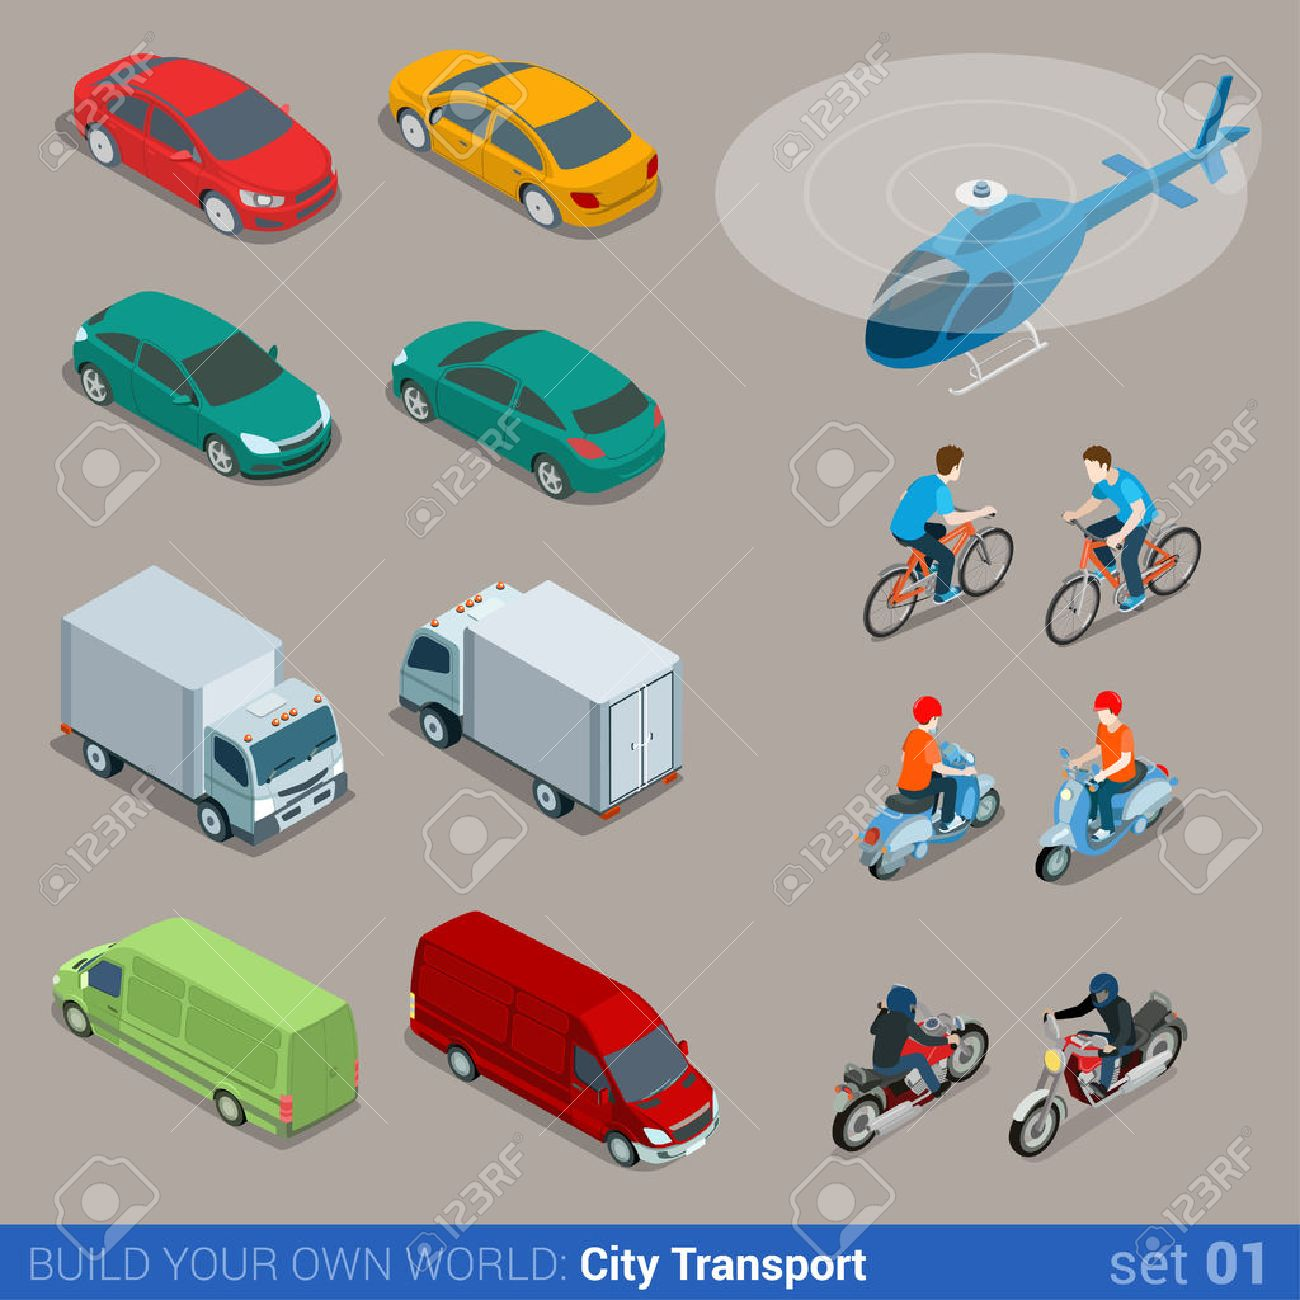 Flat 3d isometric high quality city transport icon set. Car van bus helicopter bicycle scooter motorbike and riders. Build your own world web infographic collection. - 48927578